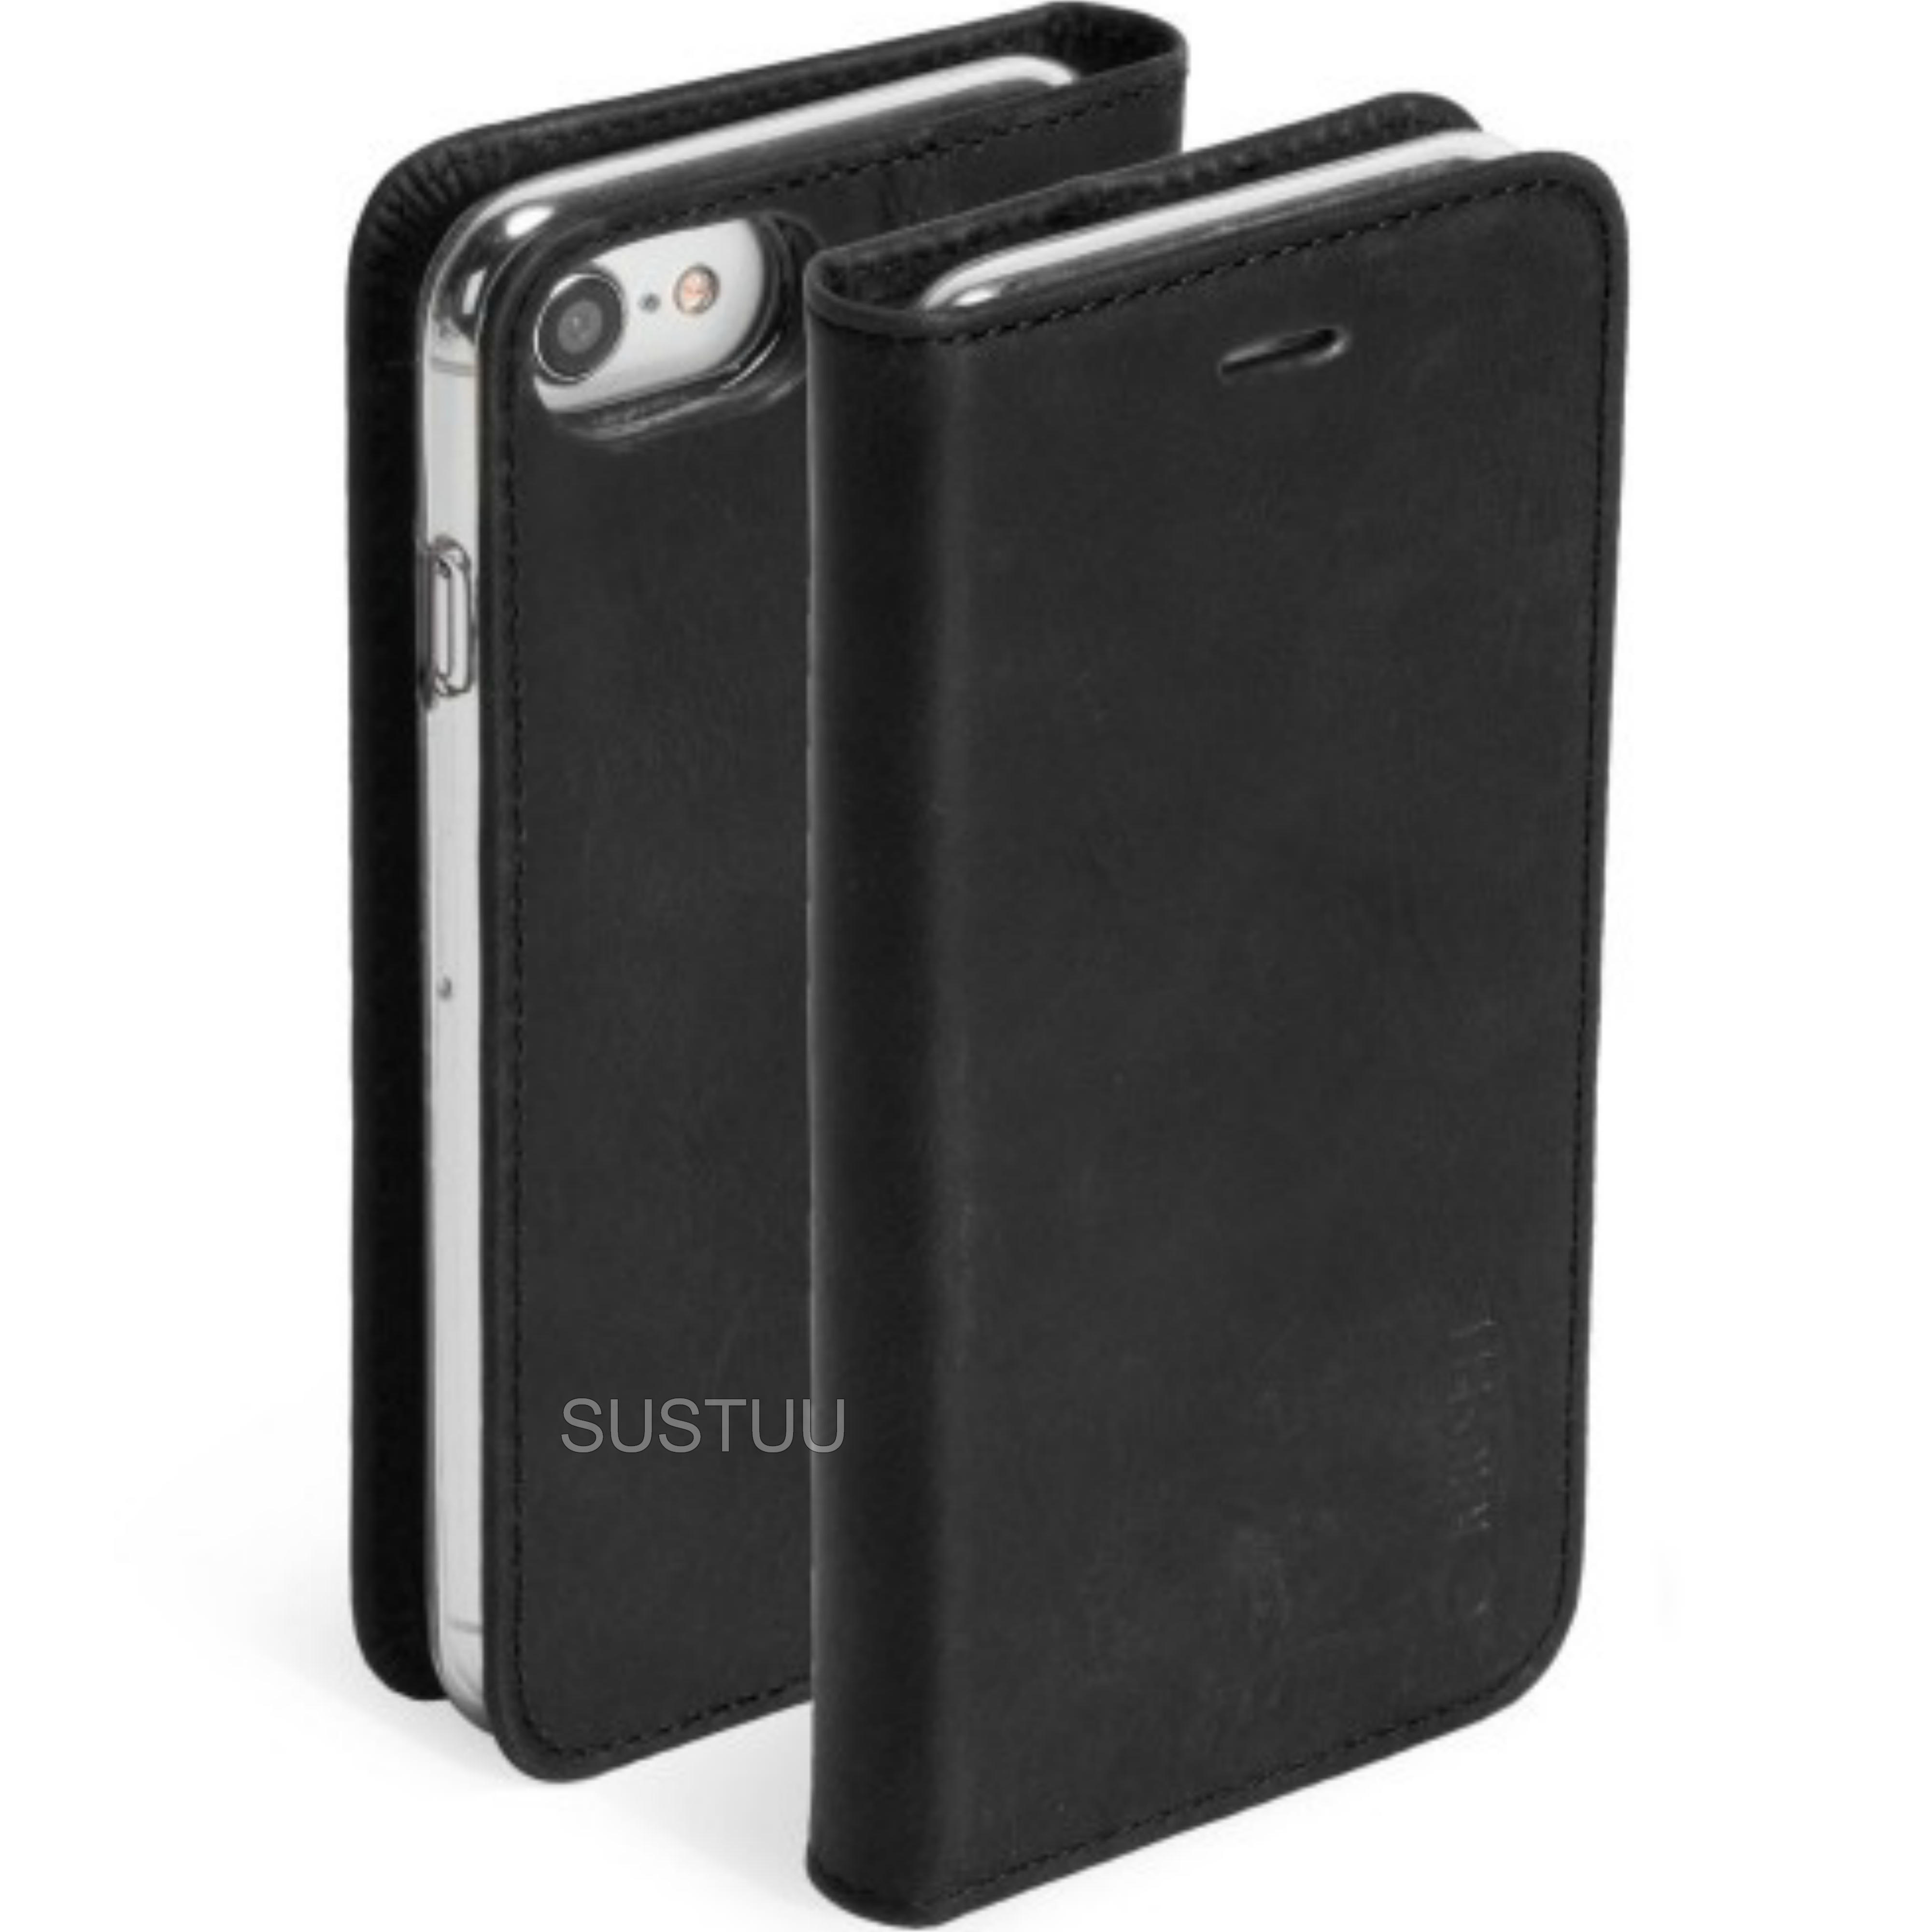 Krusell Sunne Flip Case + 4 Card Protective Cover | Stand function + Bill Pocket | For iPhone 8